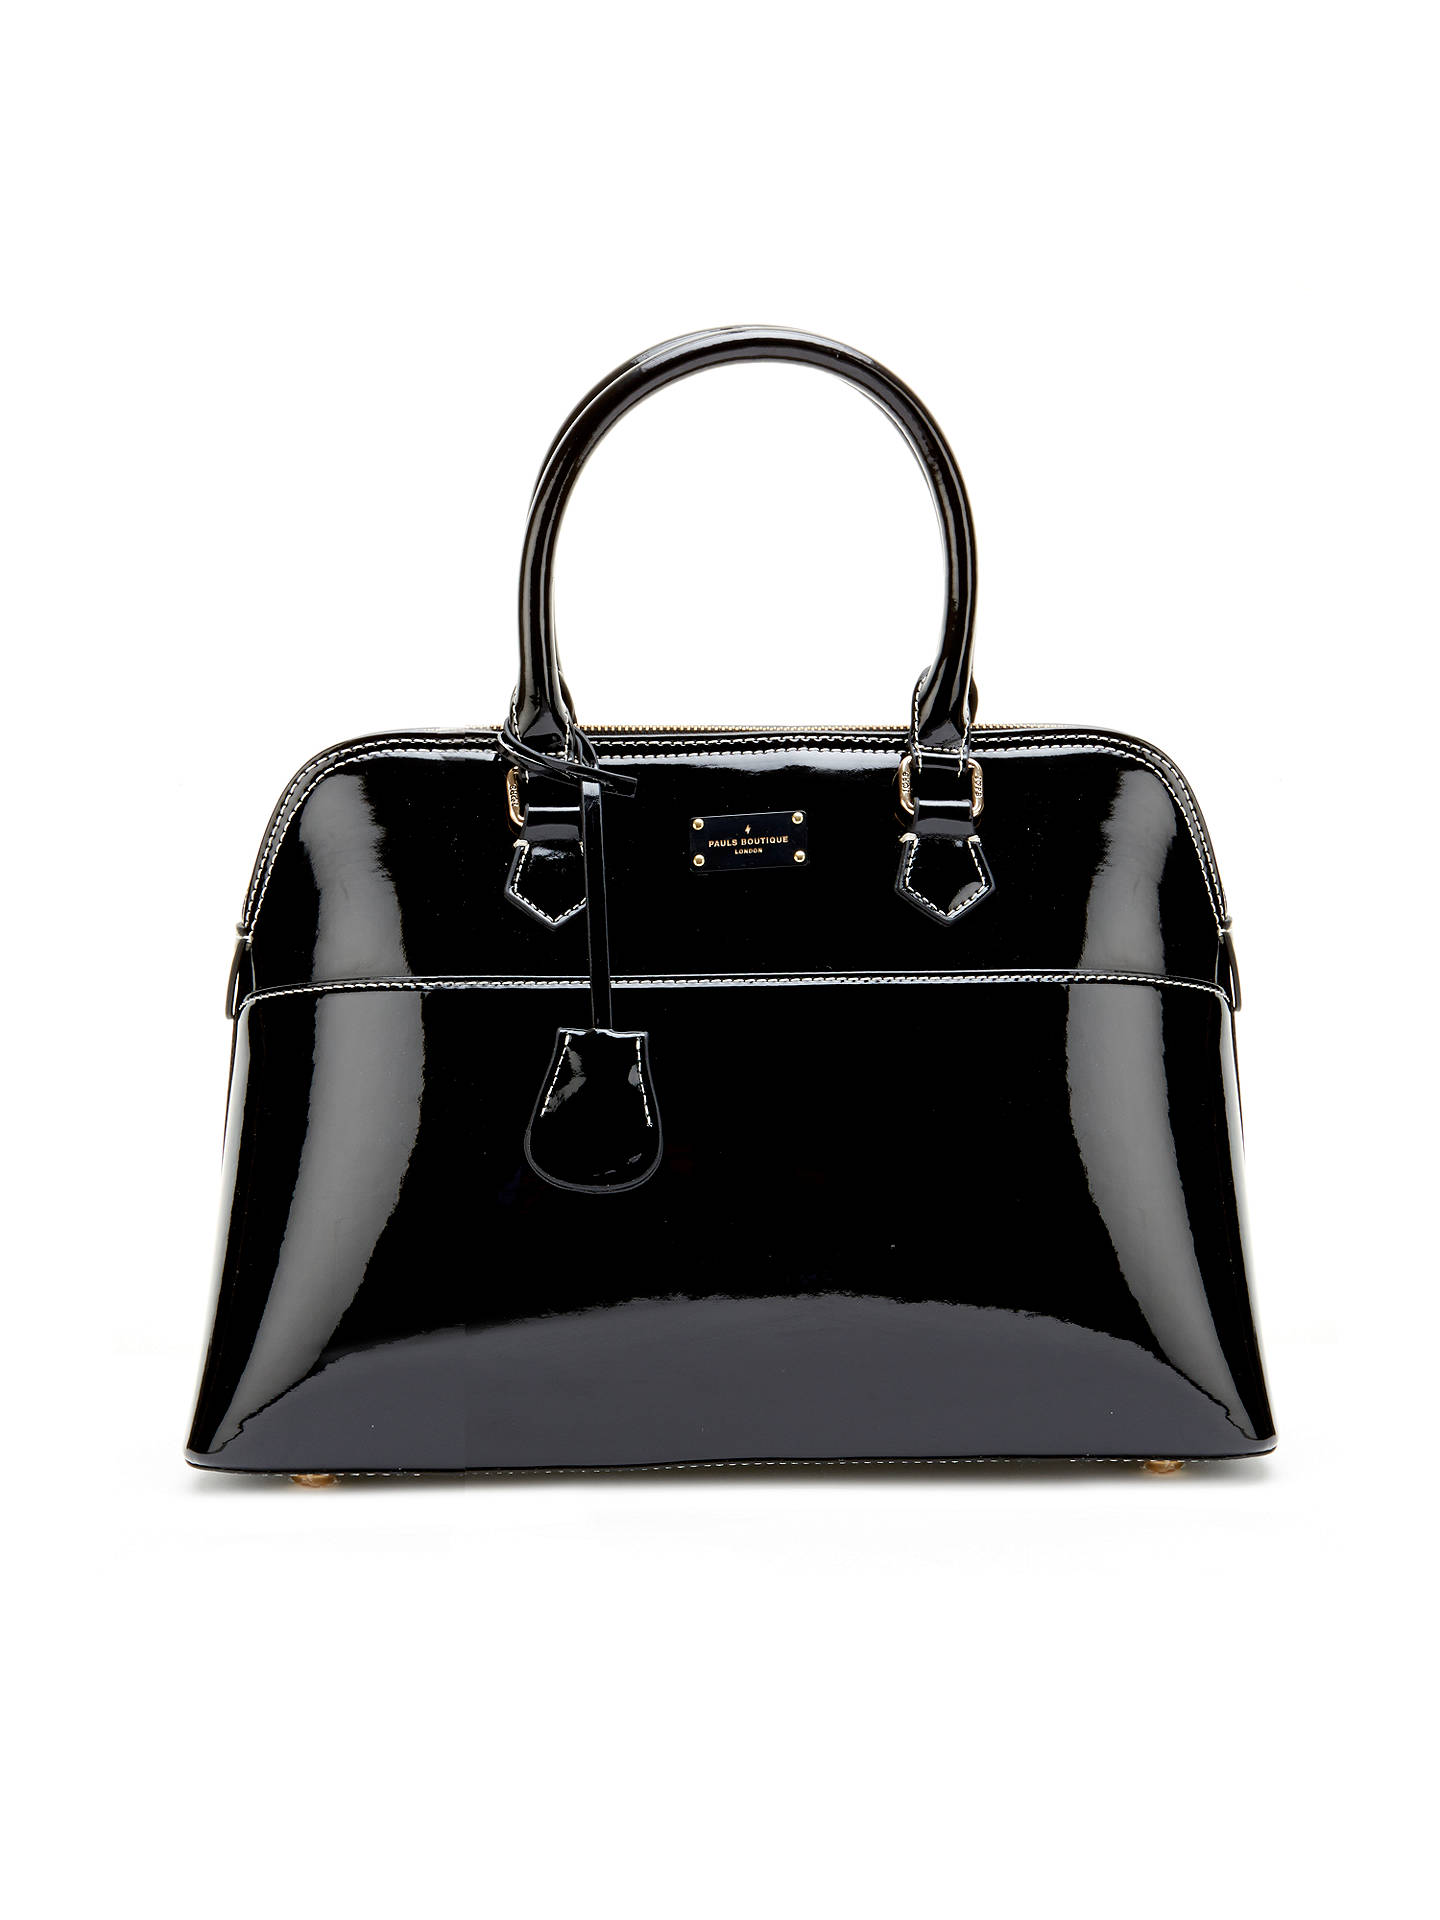 Paul S Boutique Maisy Medium Patent Tote Bag Black Online At Johnlewis